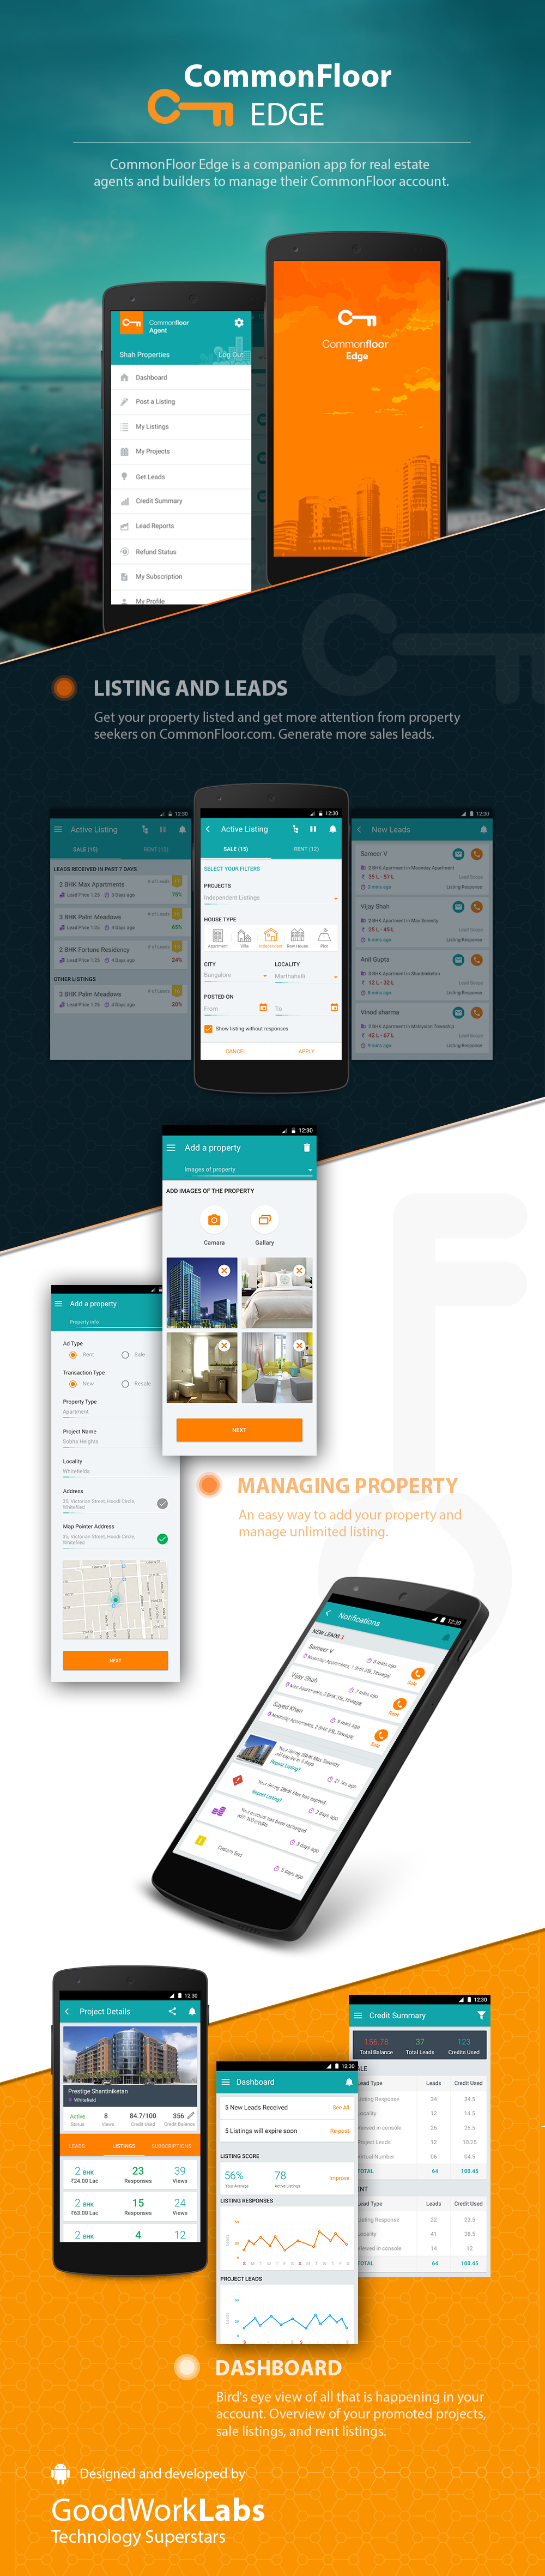 Commonfloor-edge-realestate-agent-android-app-goodworklabs